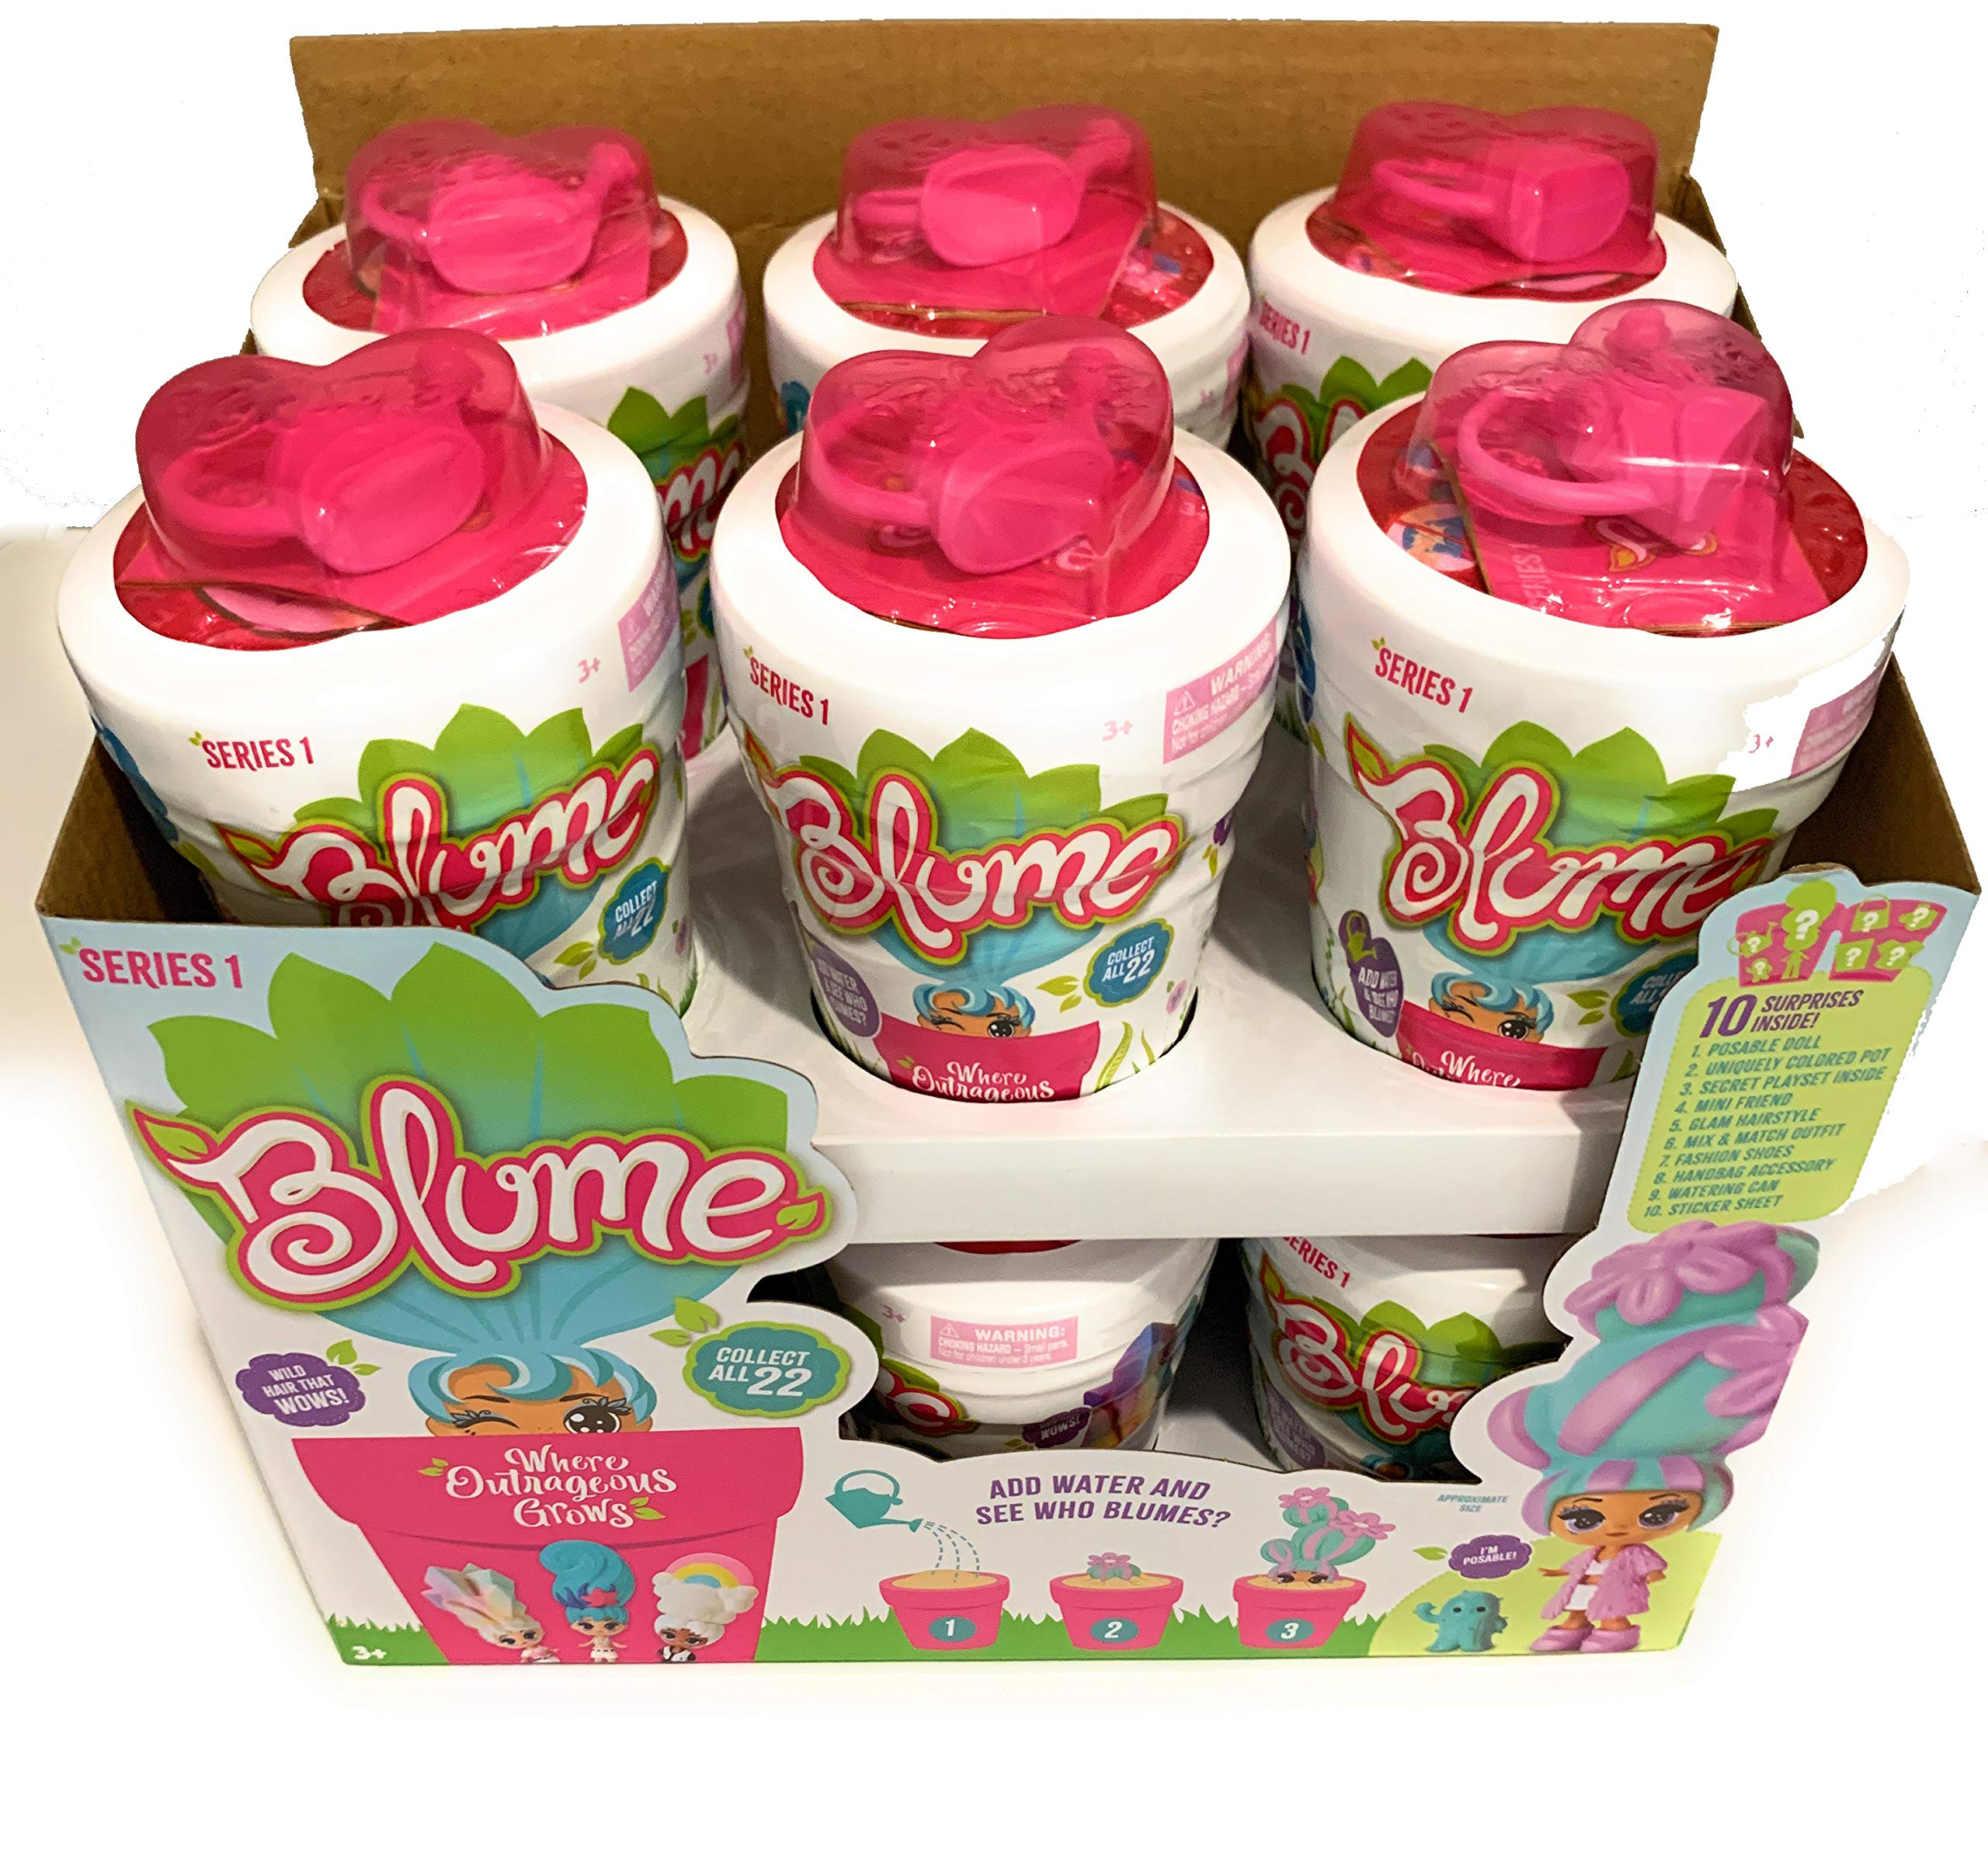 Blume Series 1 - New Friend Will Bloom Before Your Eyes! Full Case of 12 by Skyrocket